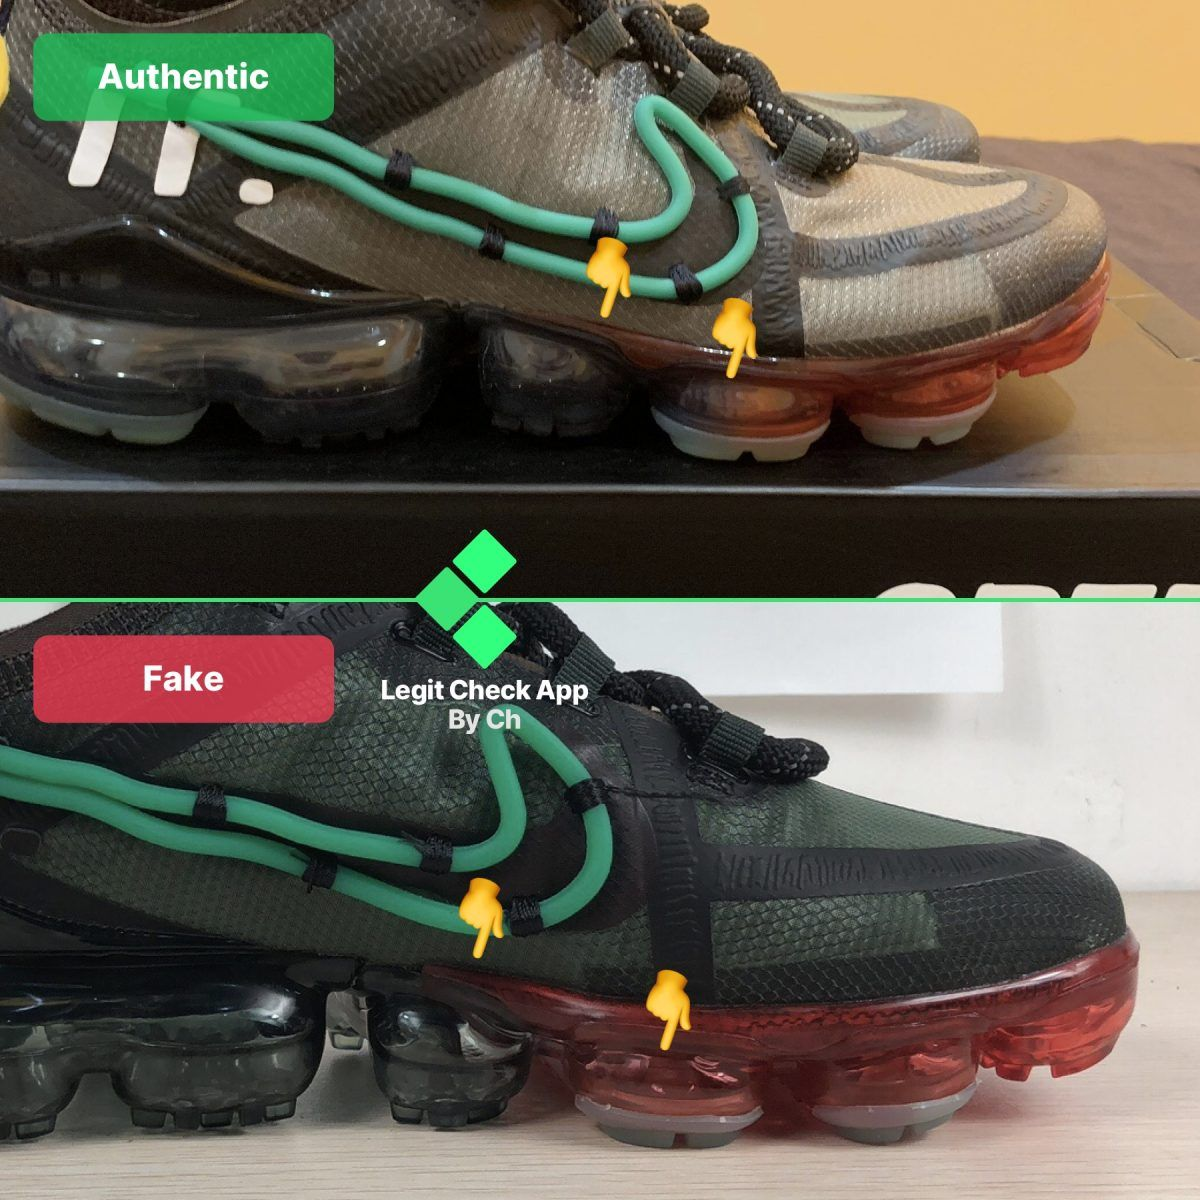 Step 4: Look at the midsole bubbles on the CPFM Vapormax